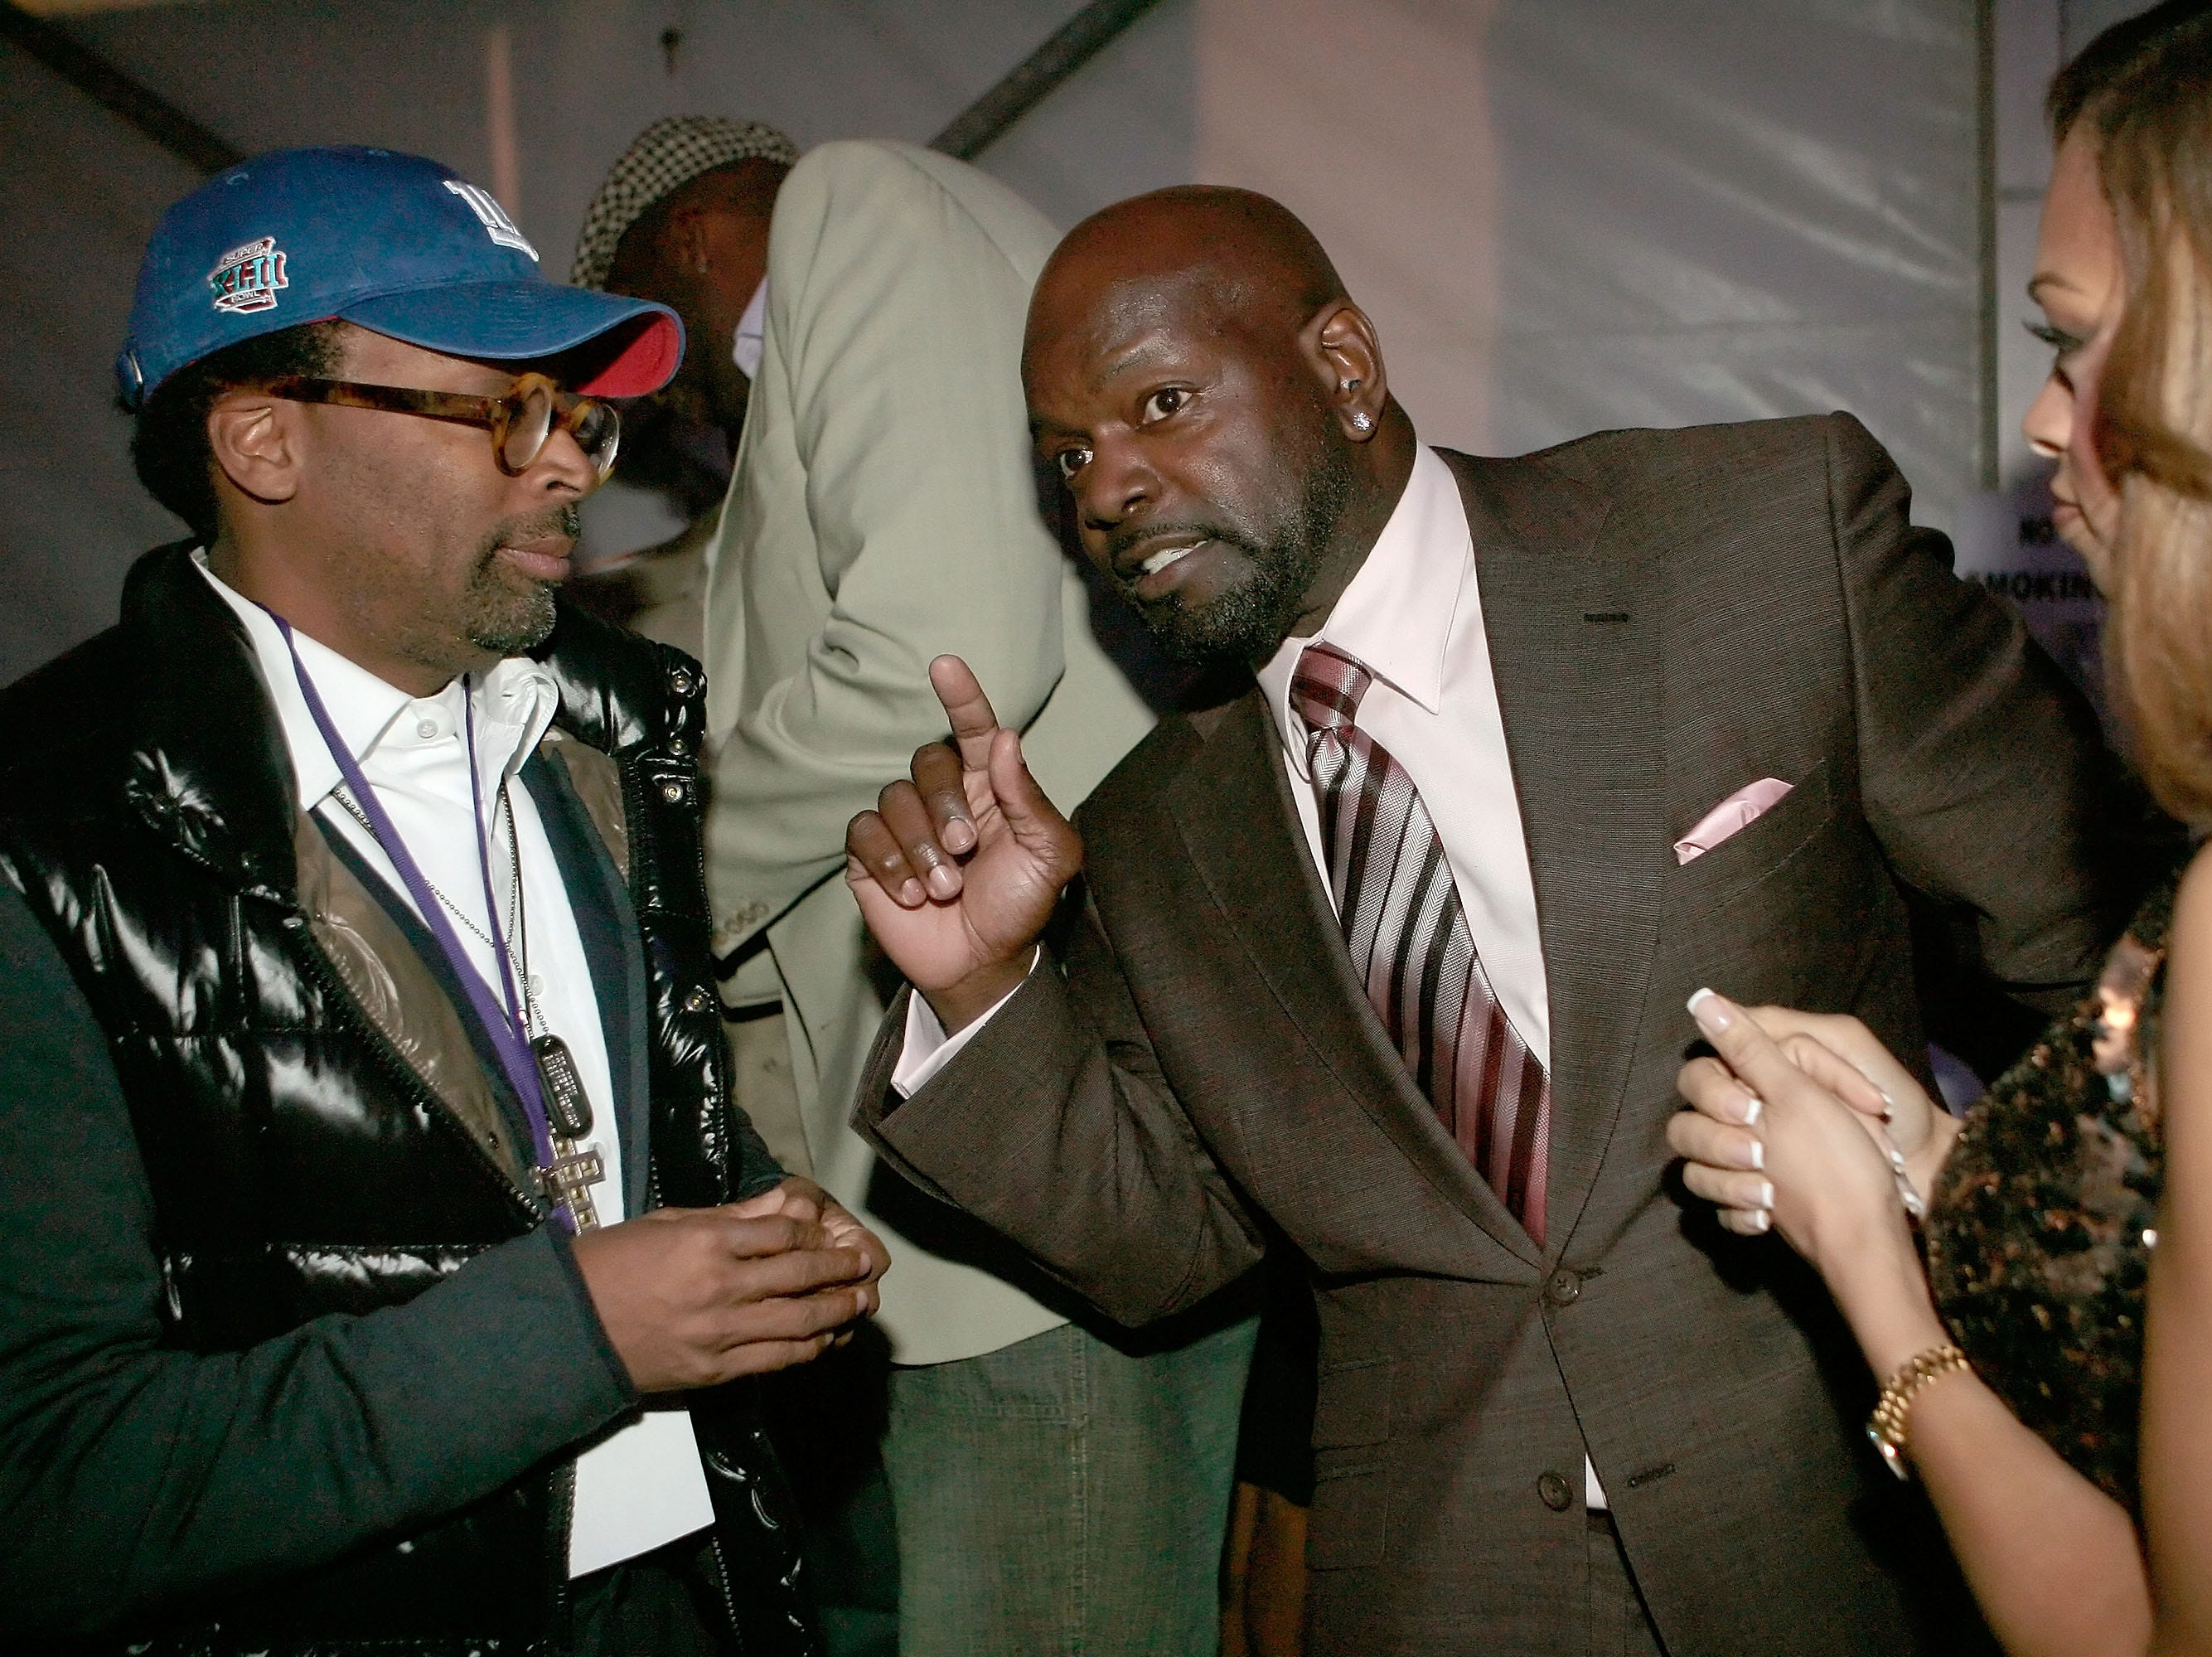 PHOENIX - FEBRUARY 02:  (L-R) Director Spike Lee, Patricia Southall and Emmitt Smith attend the Chris ock Live in Concert performance benefiting the HollyRod Foundation held at Prive Lounge on February 2, 2008 in Phoenix, Arizona.  (Photo by Charley Gallay/Getty Images for HollyRod Foundation)